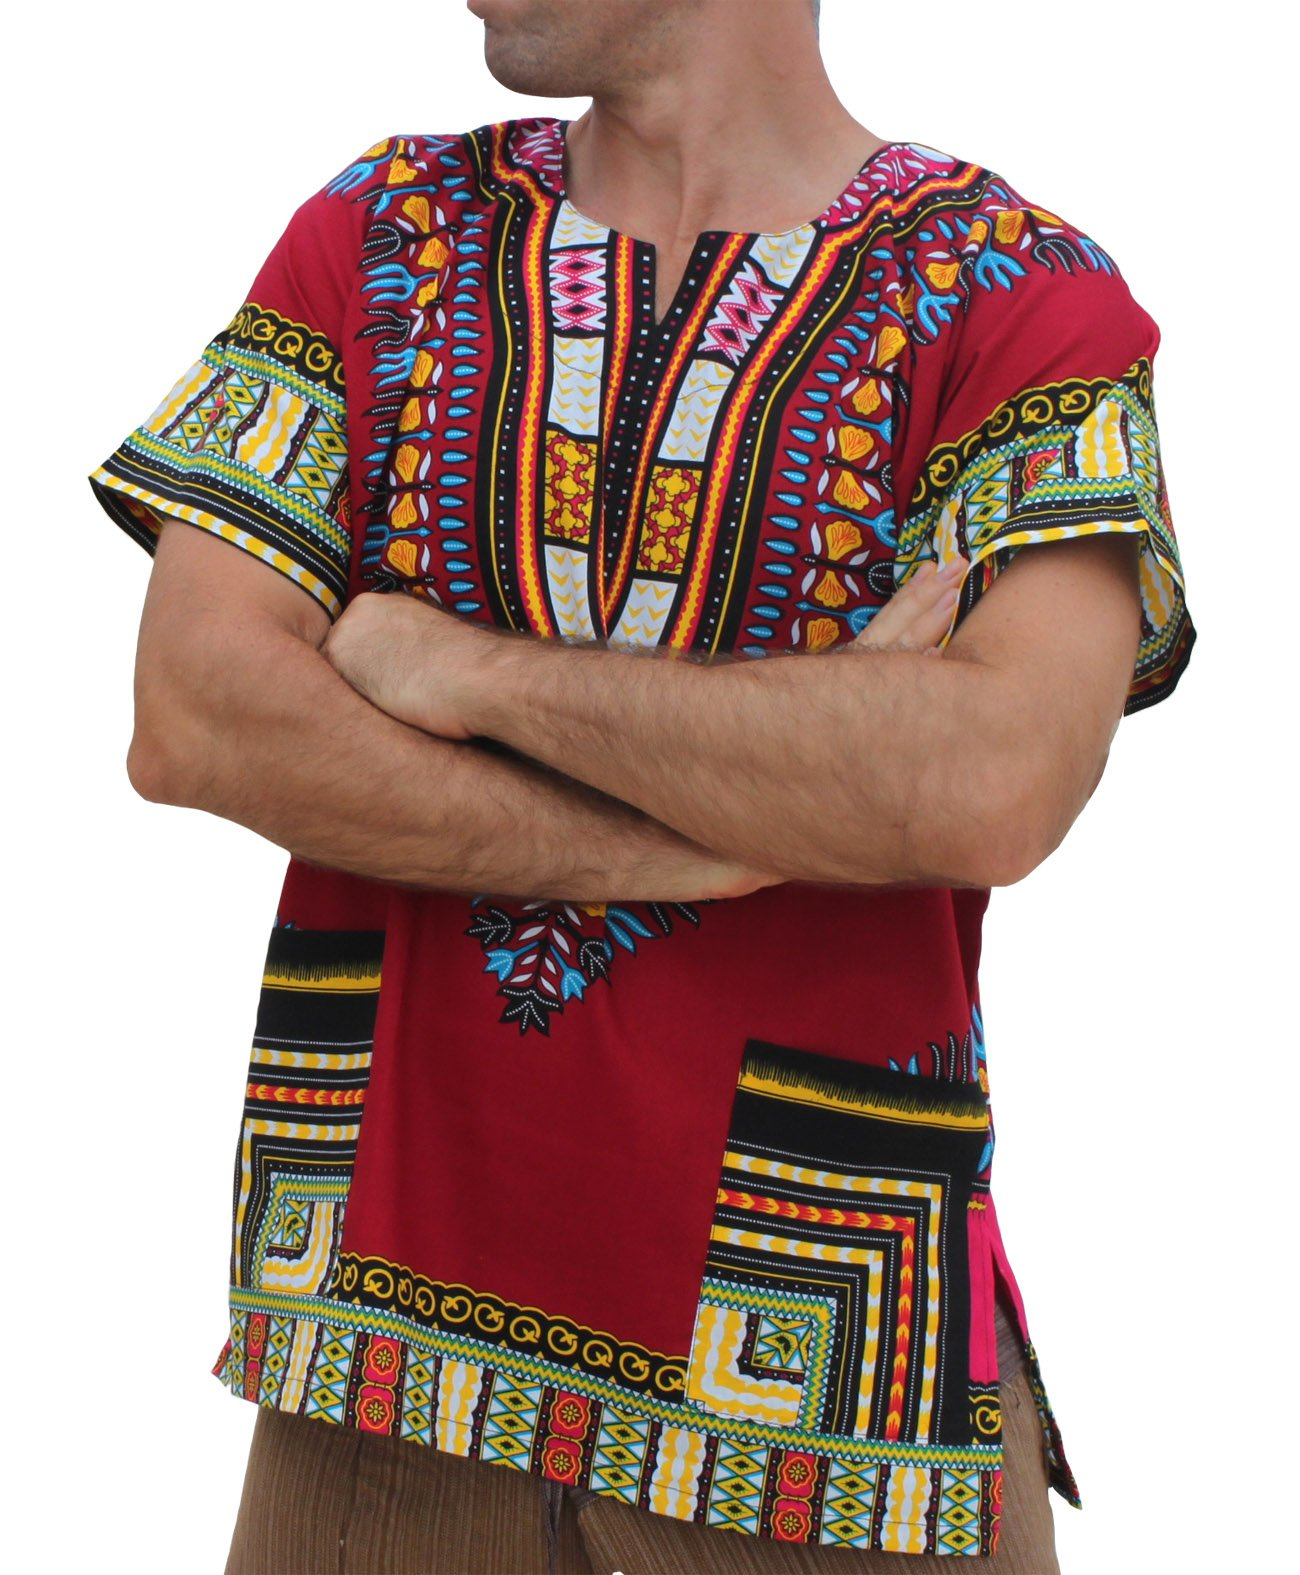 RaanPahMuang Unisex African Bright Dashiki Cotton Shirt , Burgundy, Large by Raan Pah Muang